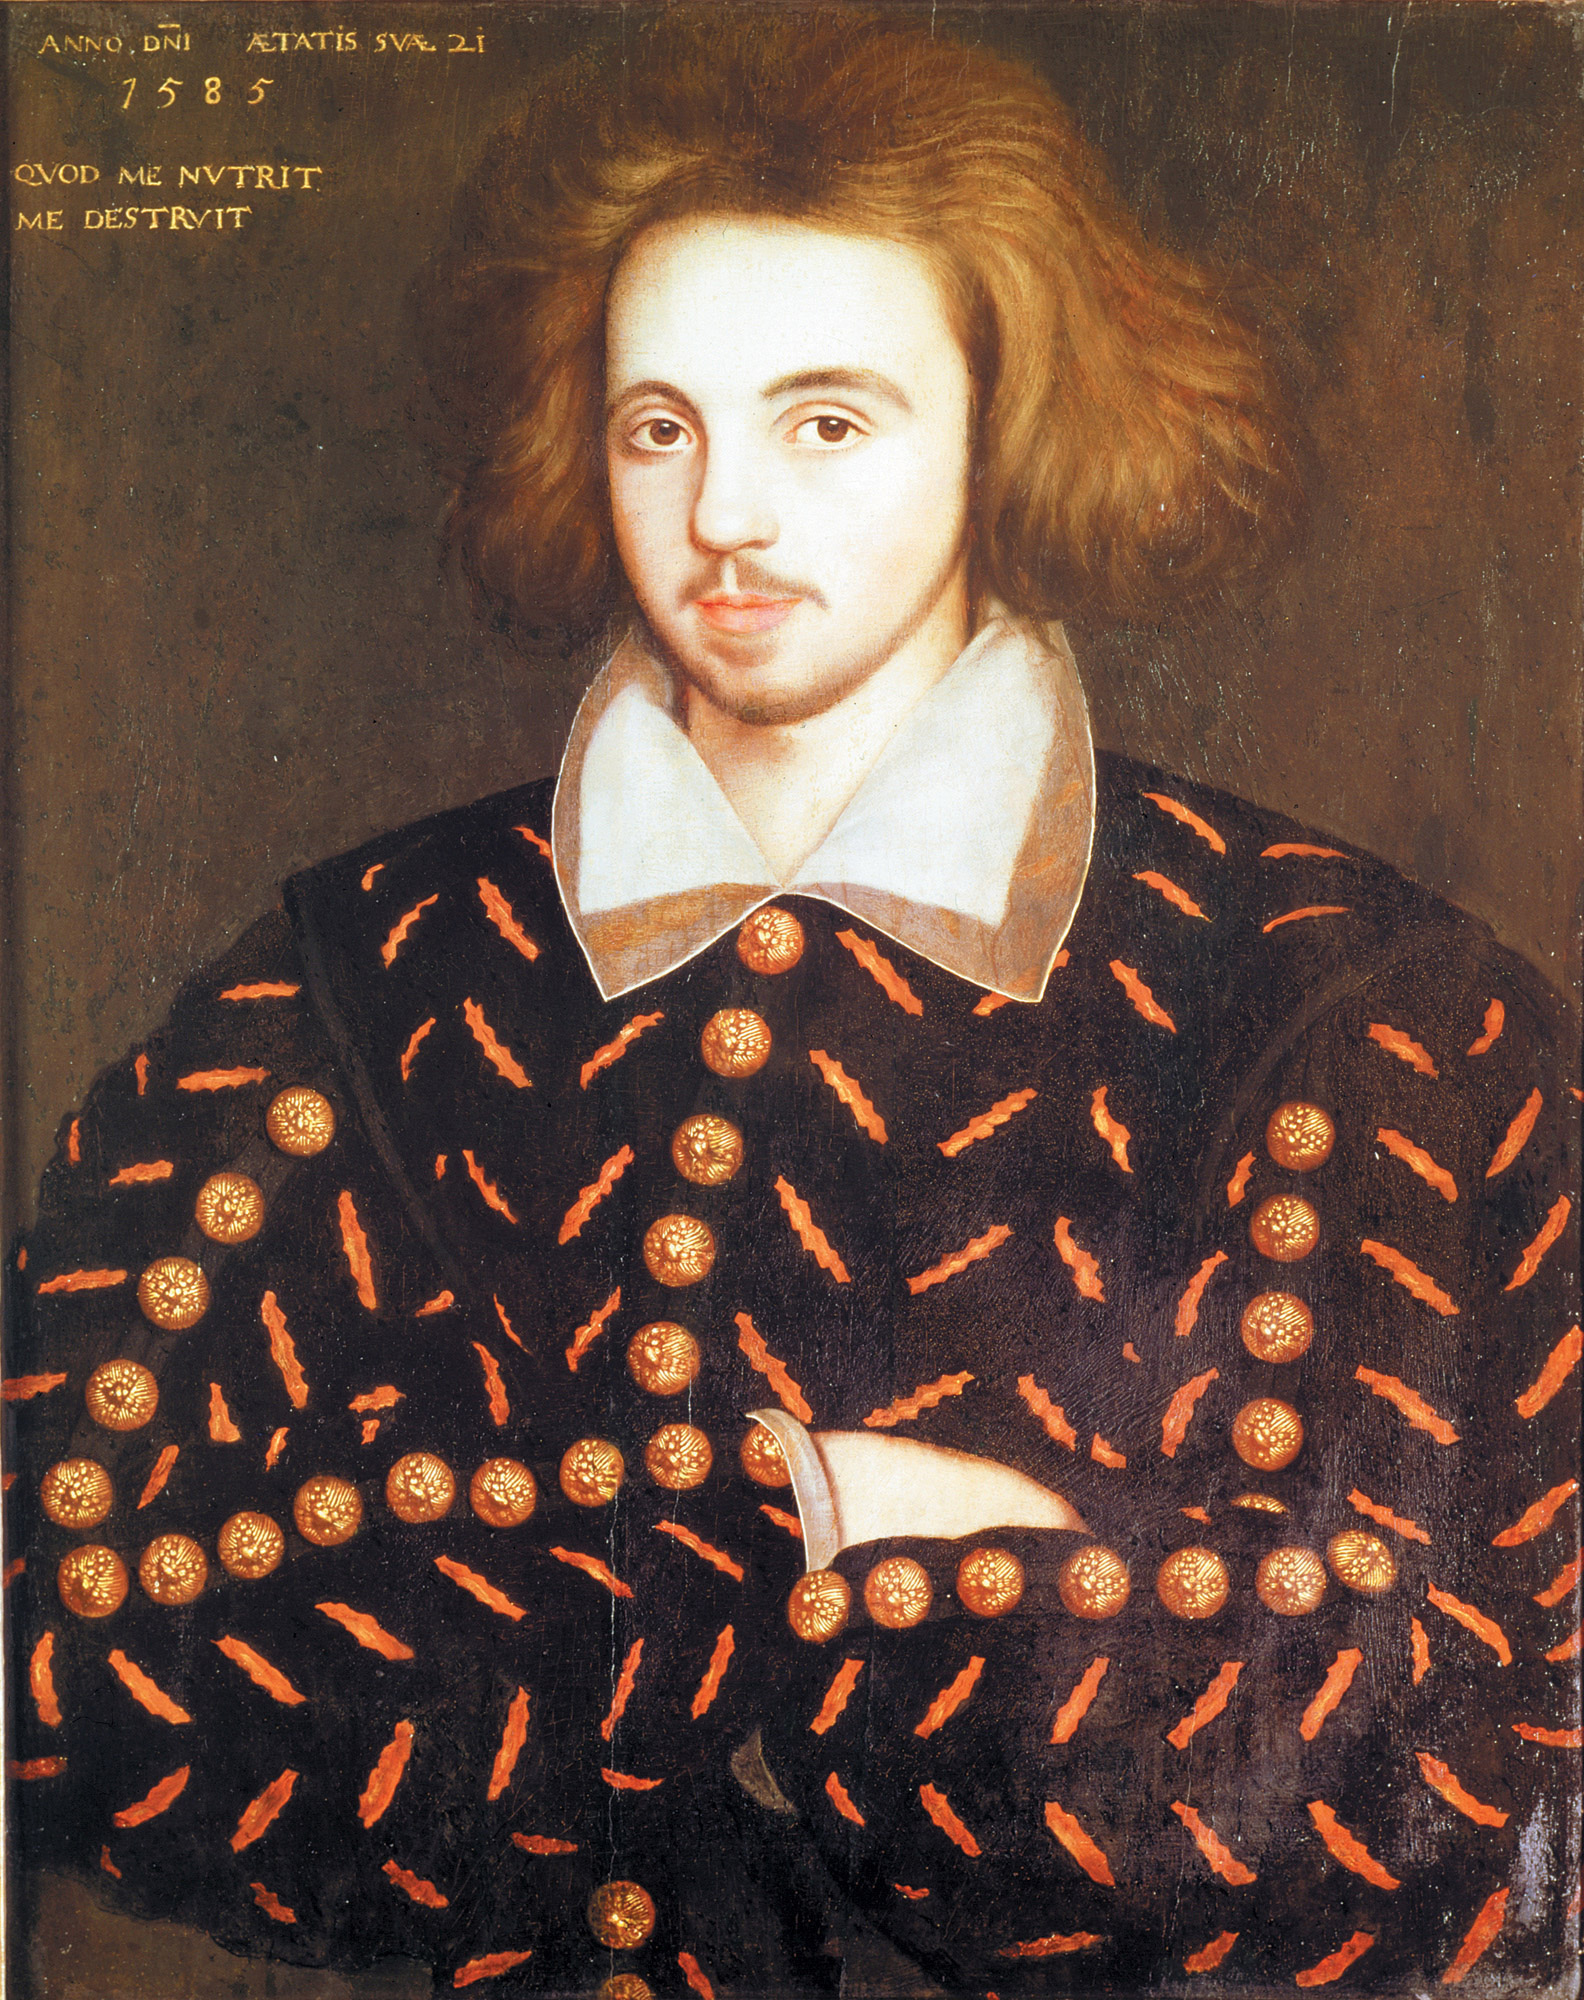 Painting of a young man, perhaps Christopher Marlowe, 1585